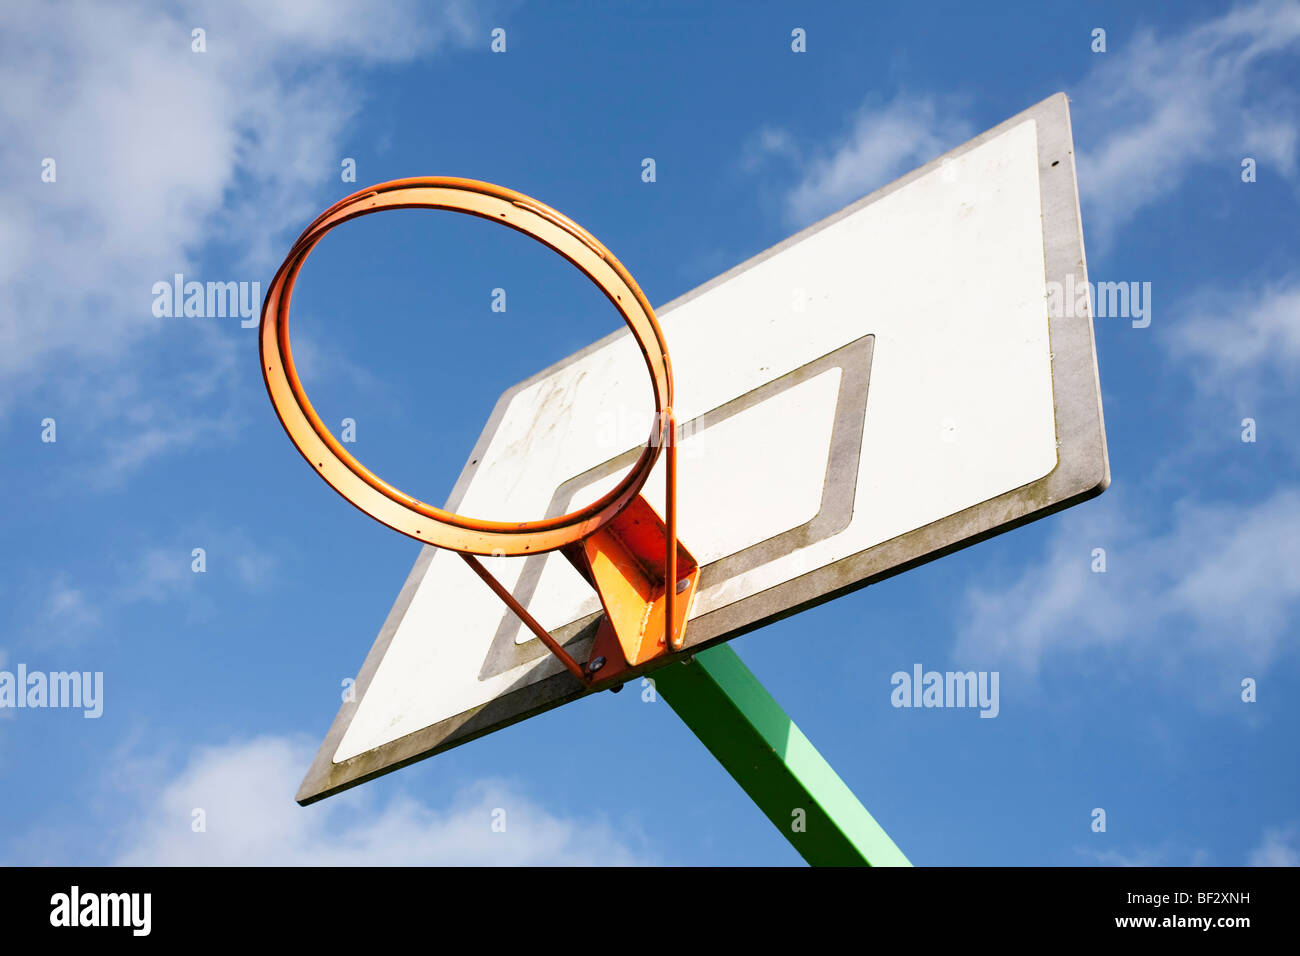 basketball hoop against a blue sky and white clouds - Stock Image